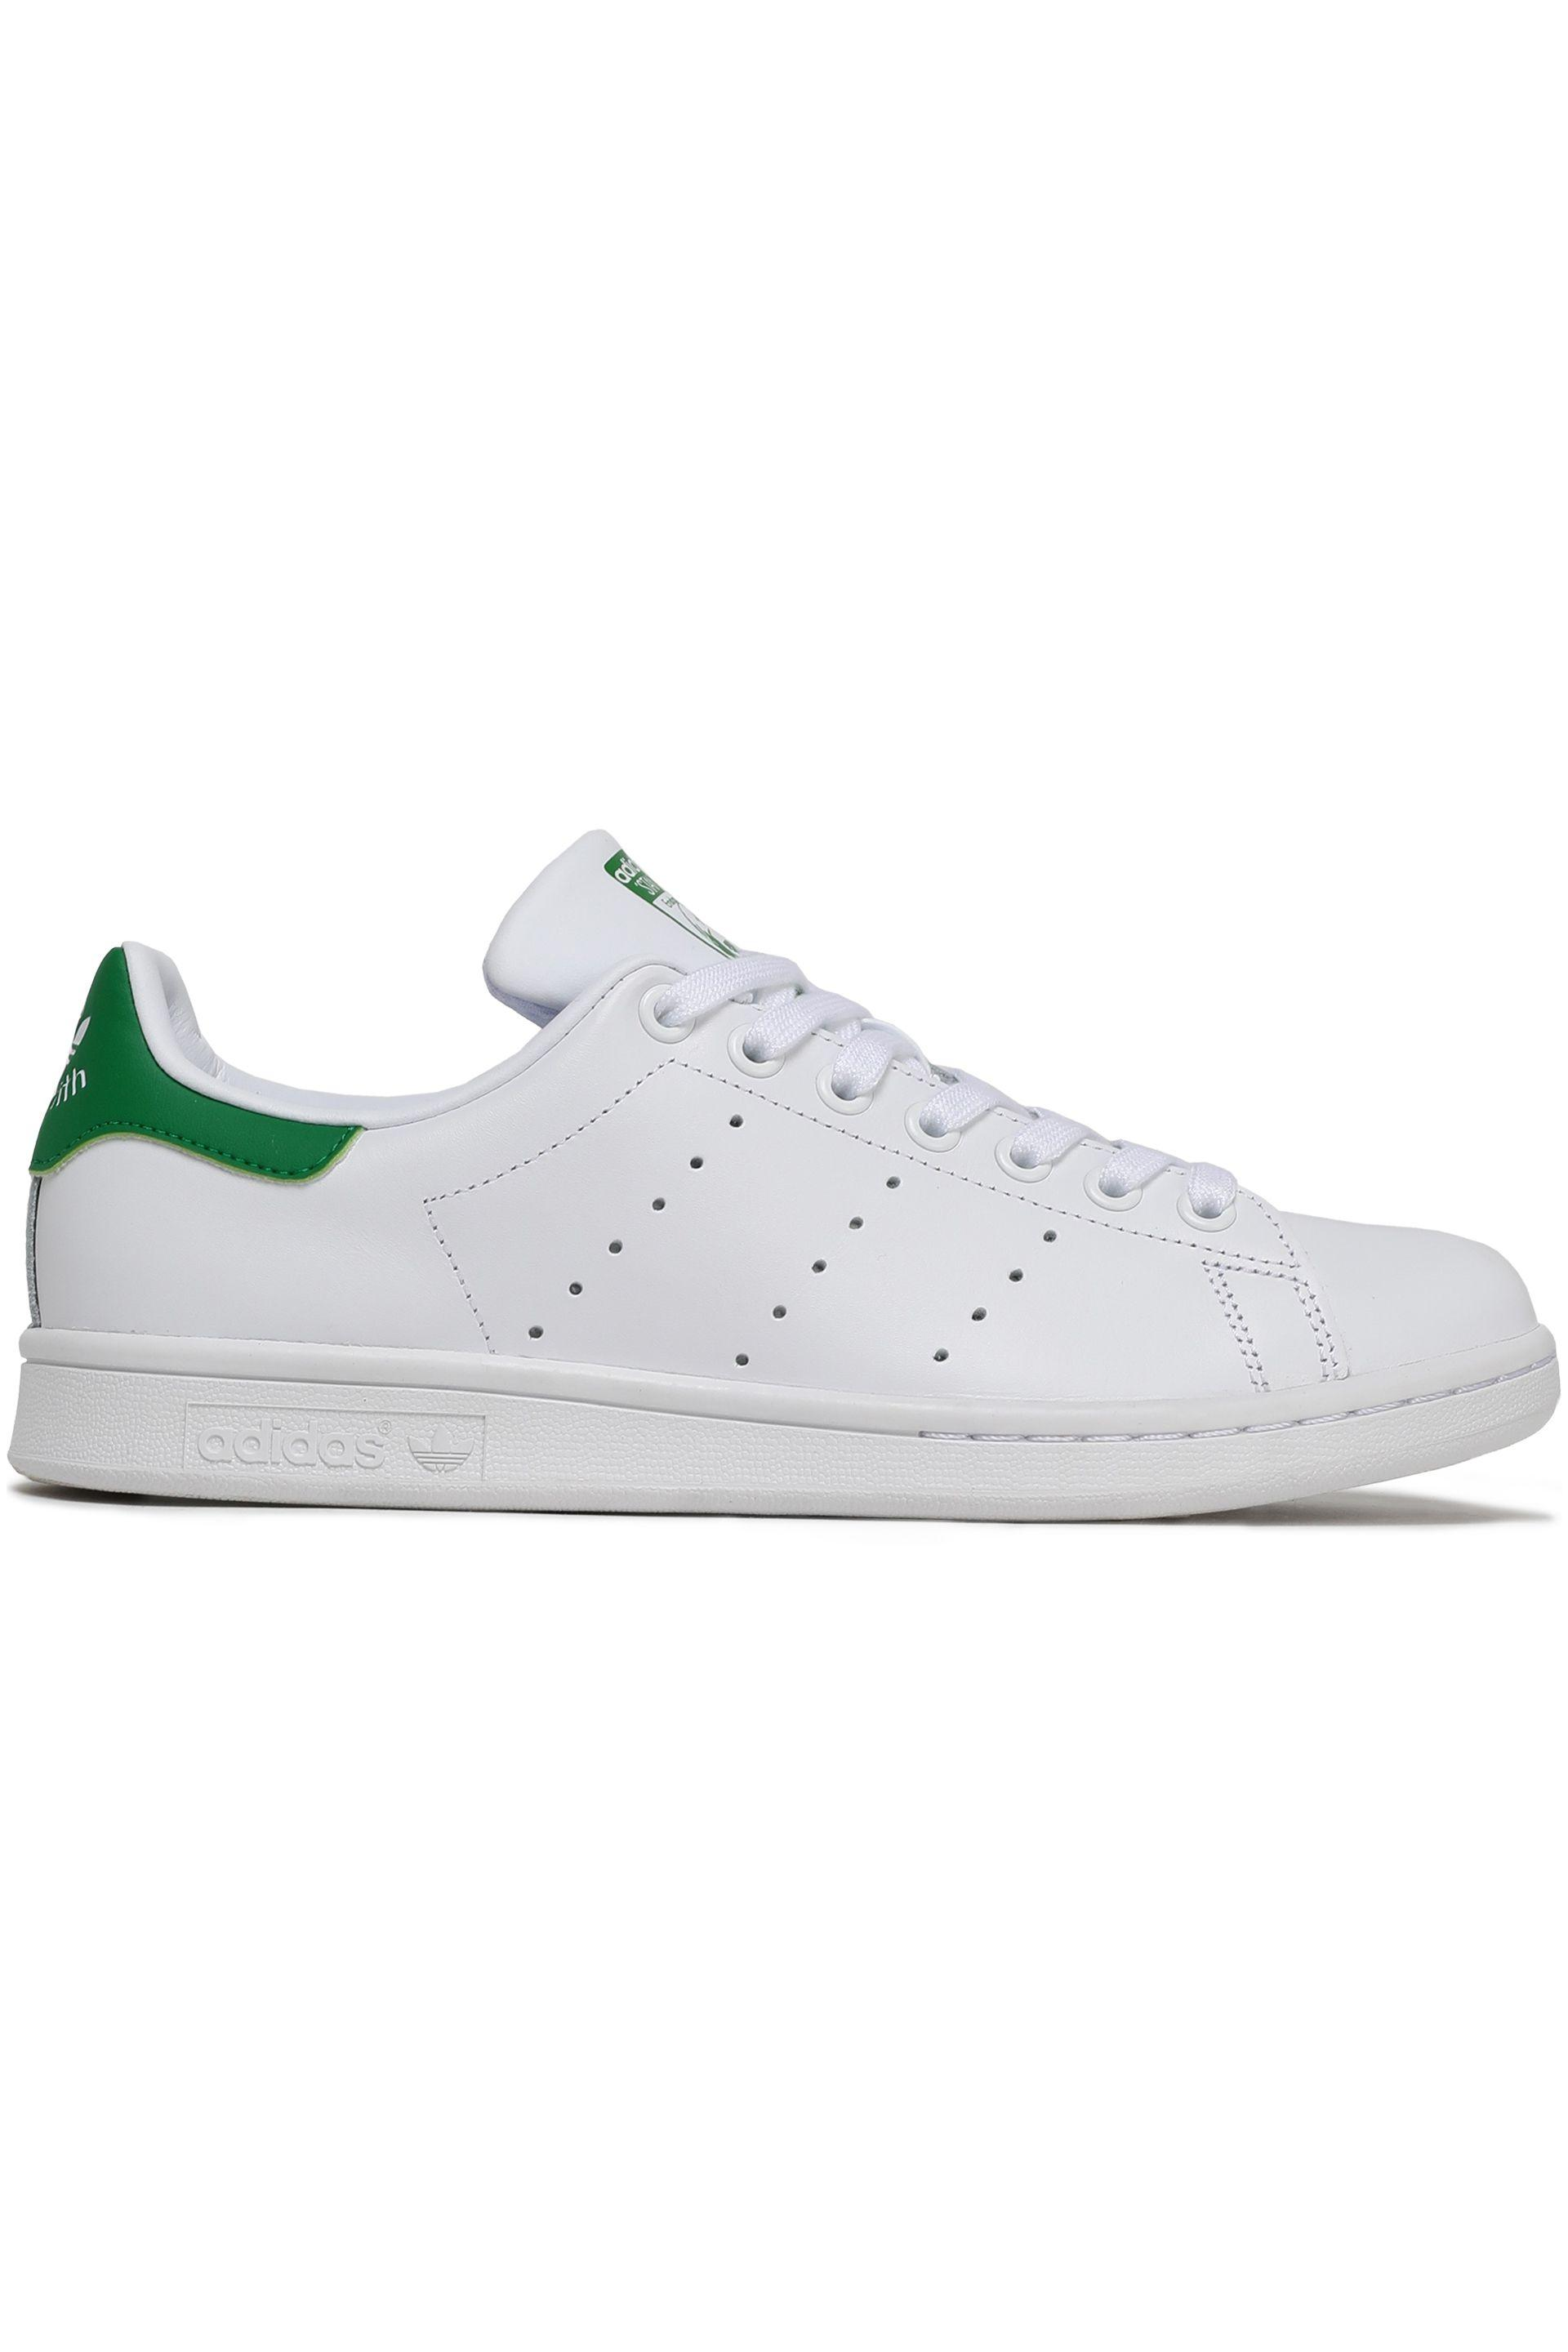 In Adidas Perforated Sneakers Leather Woman Originals White Lyst Y67bfgy